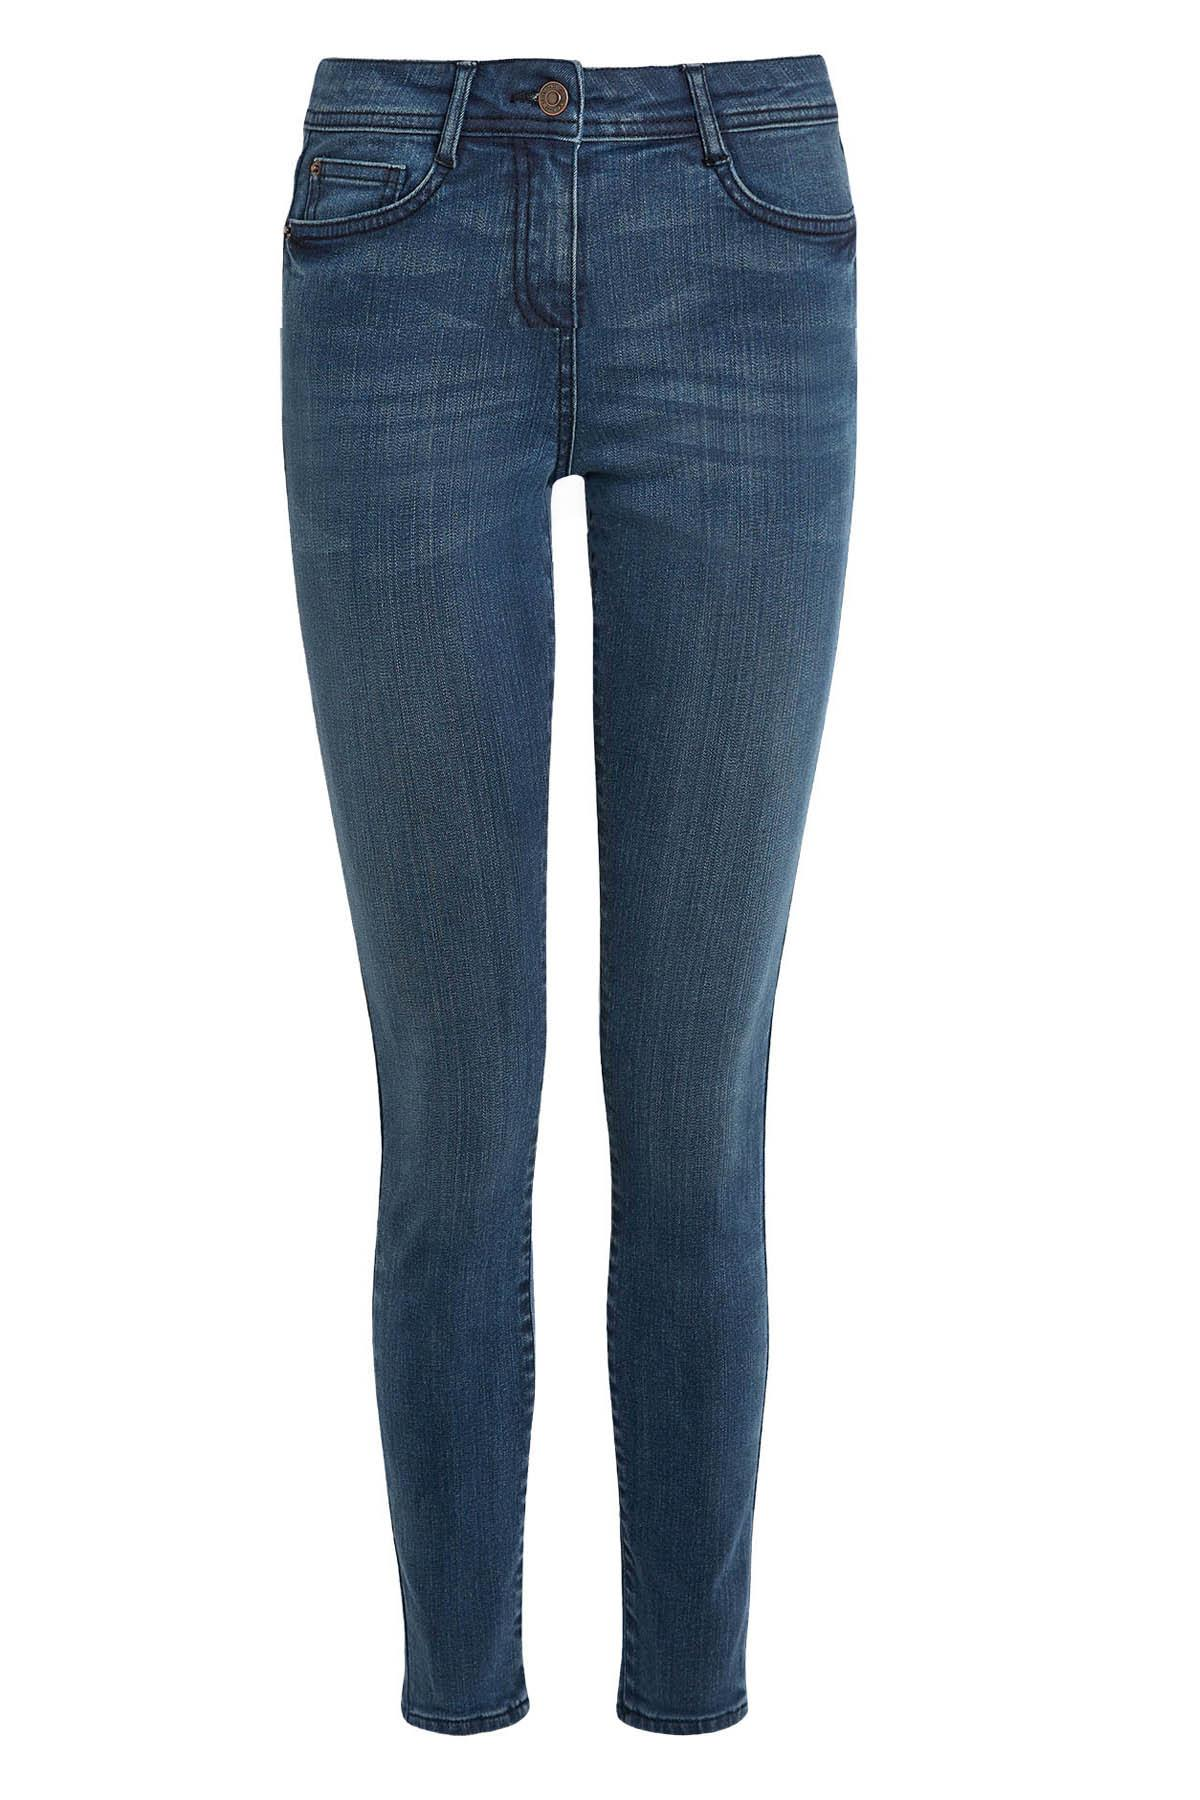 Ladies Ex NEW LOOK Jenna Skinny Jeans Blue Sizes 4-18 *NEW*